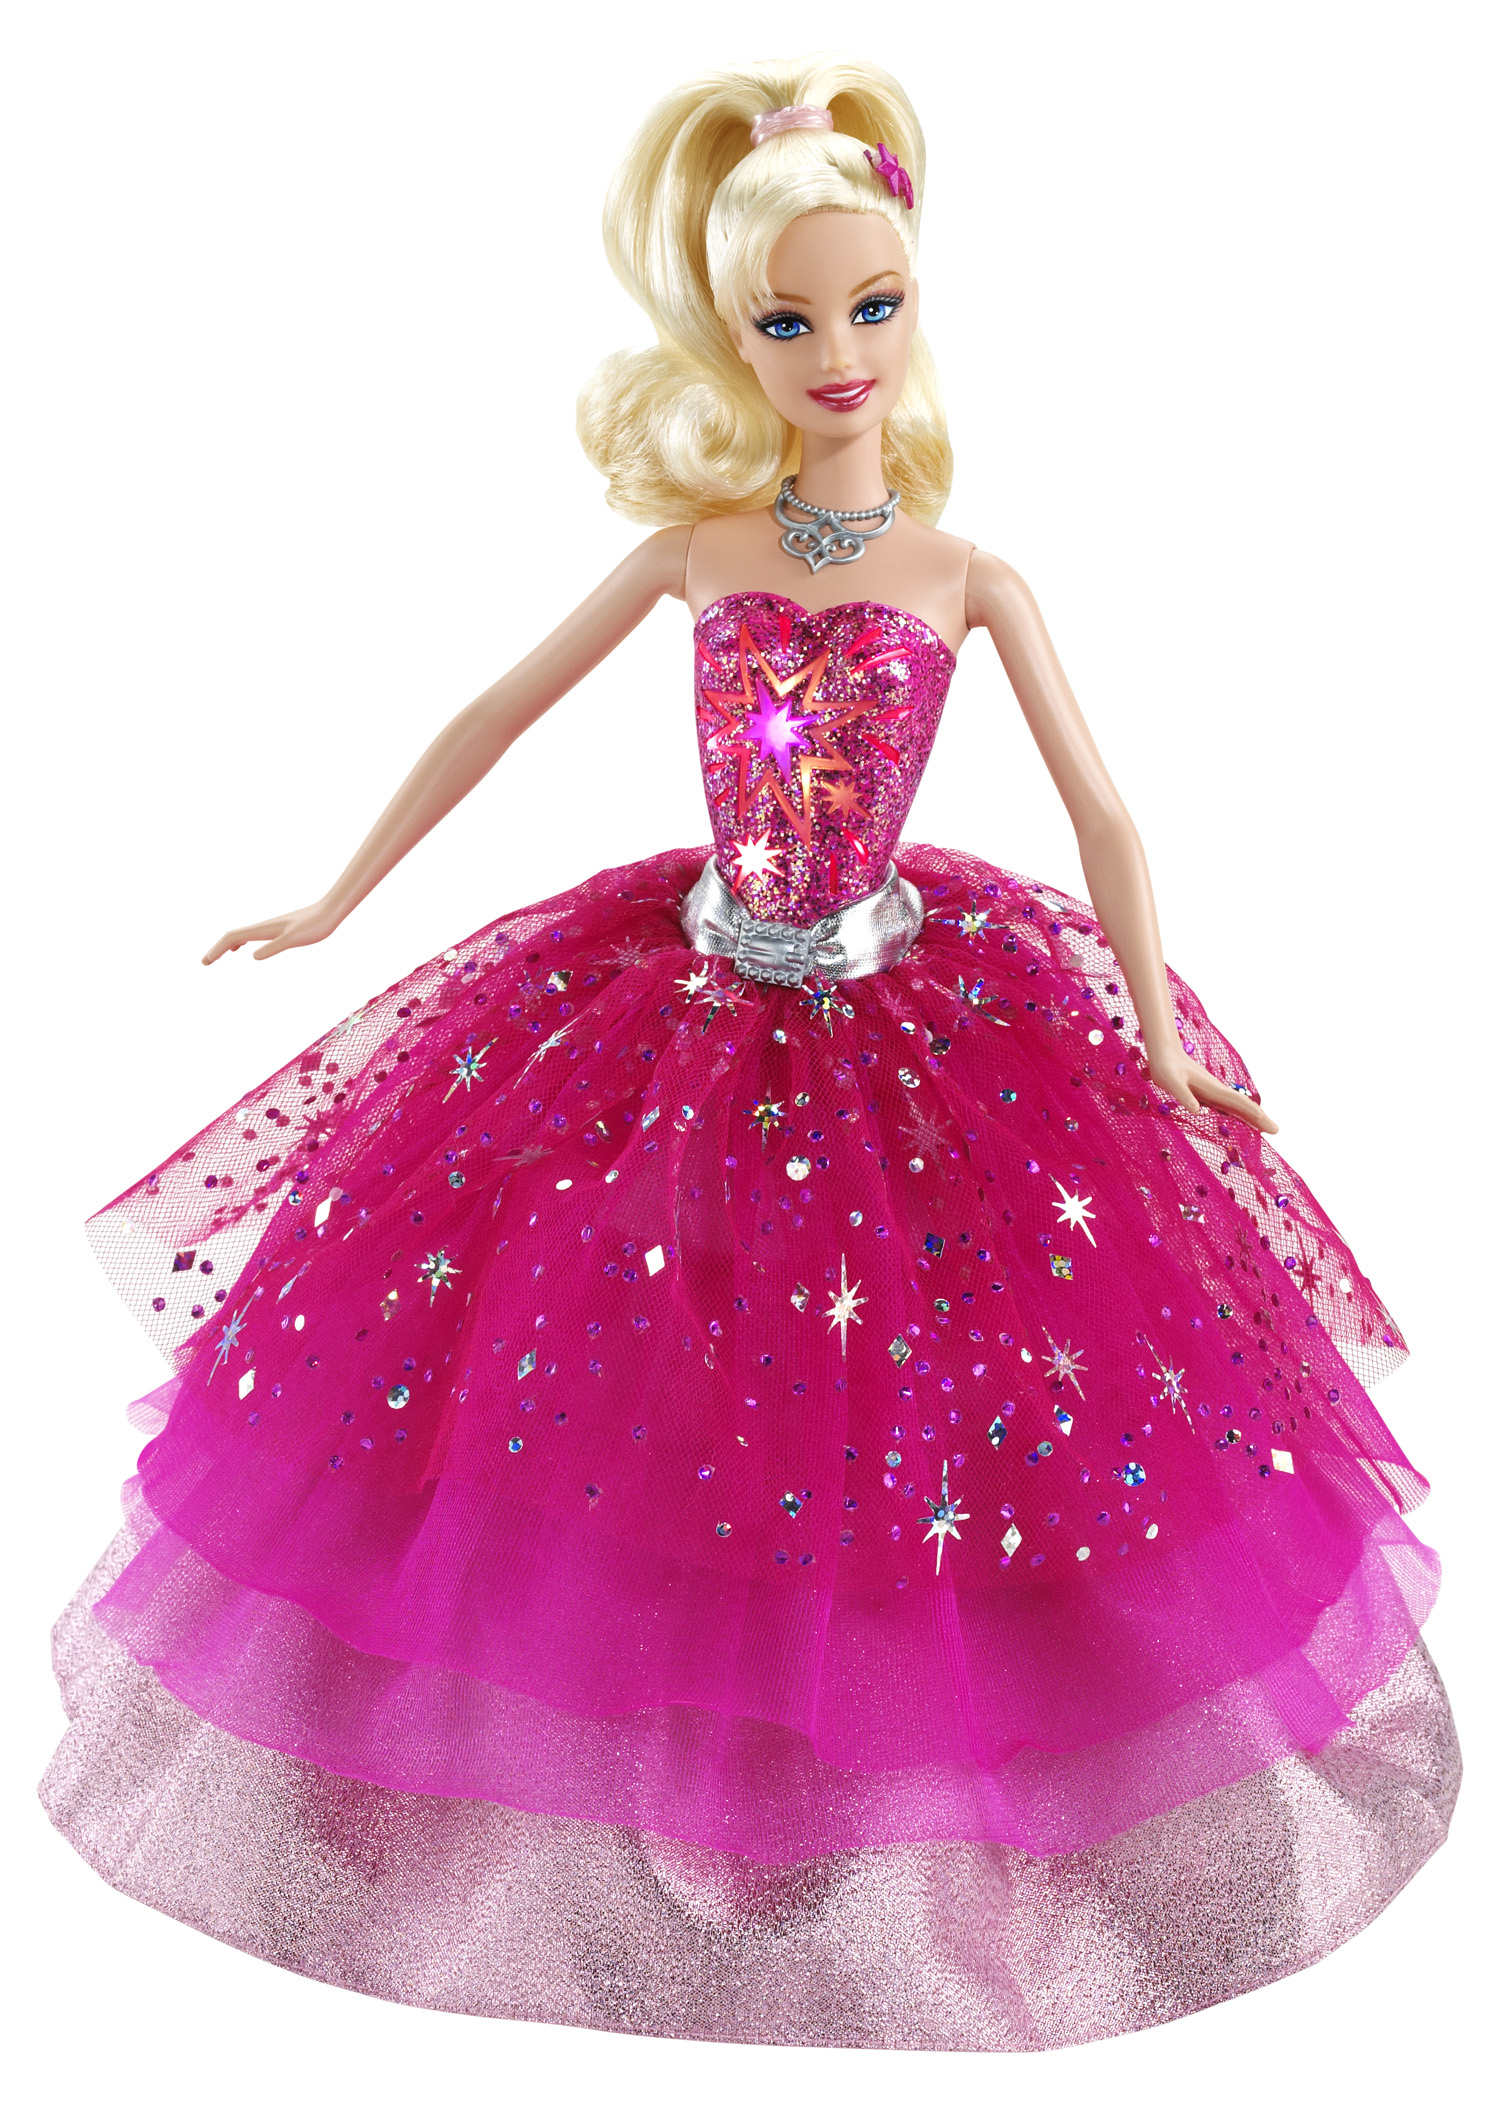 Barbies Dolls Download Free Wallpapers Barbie Printables